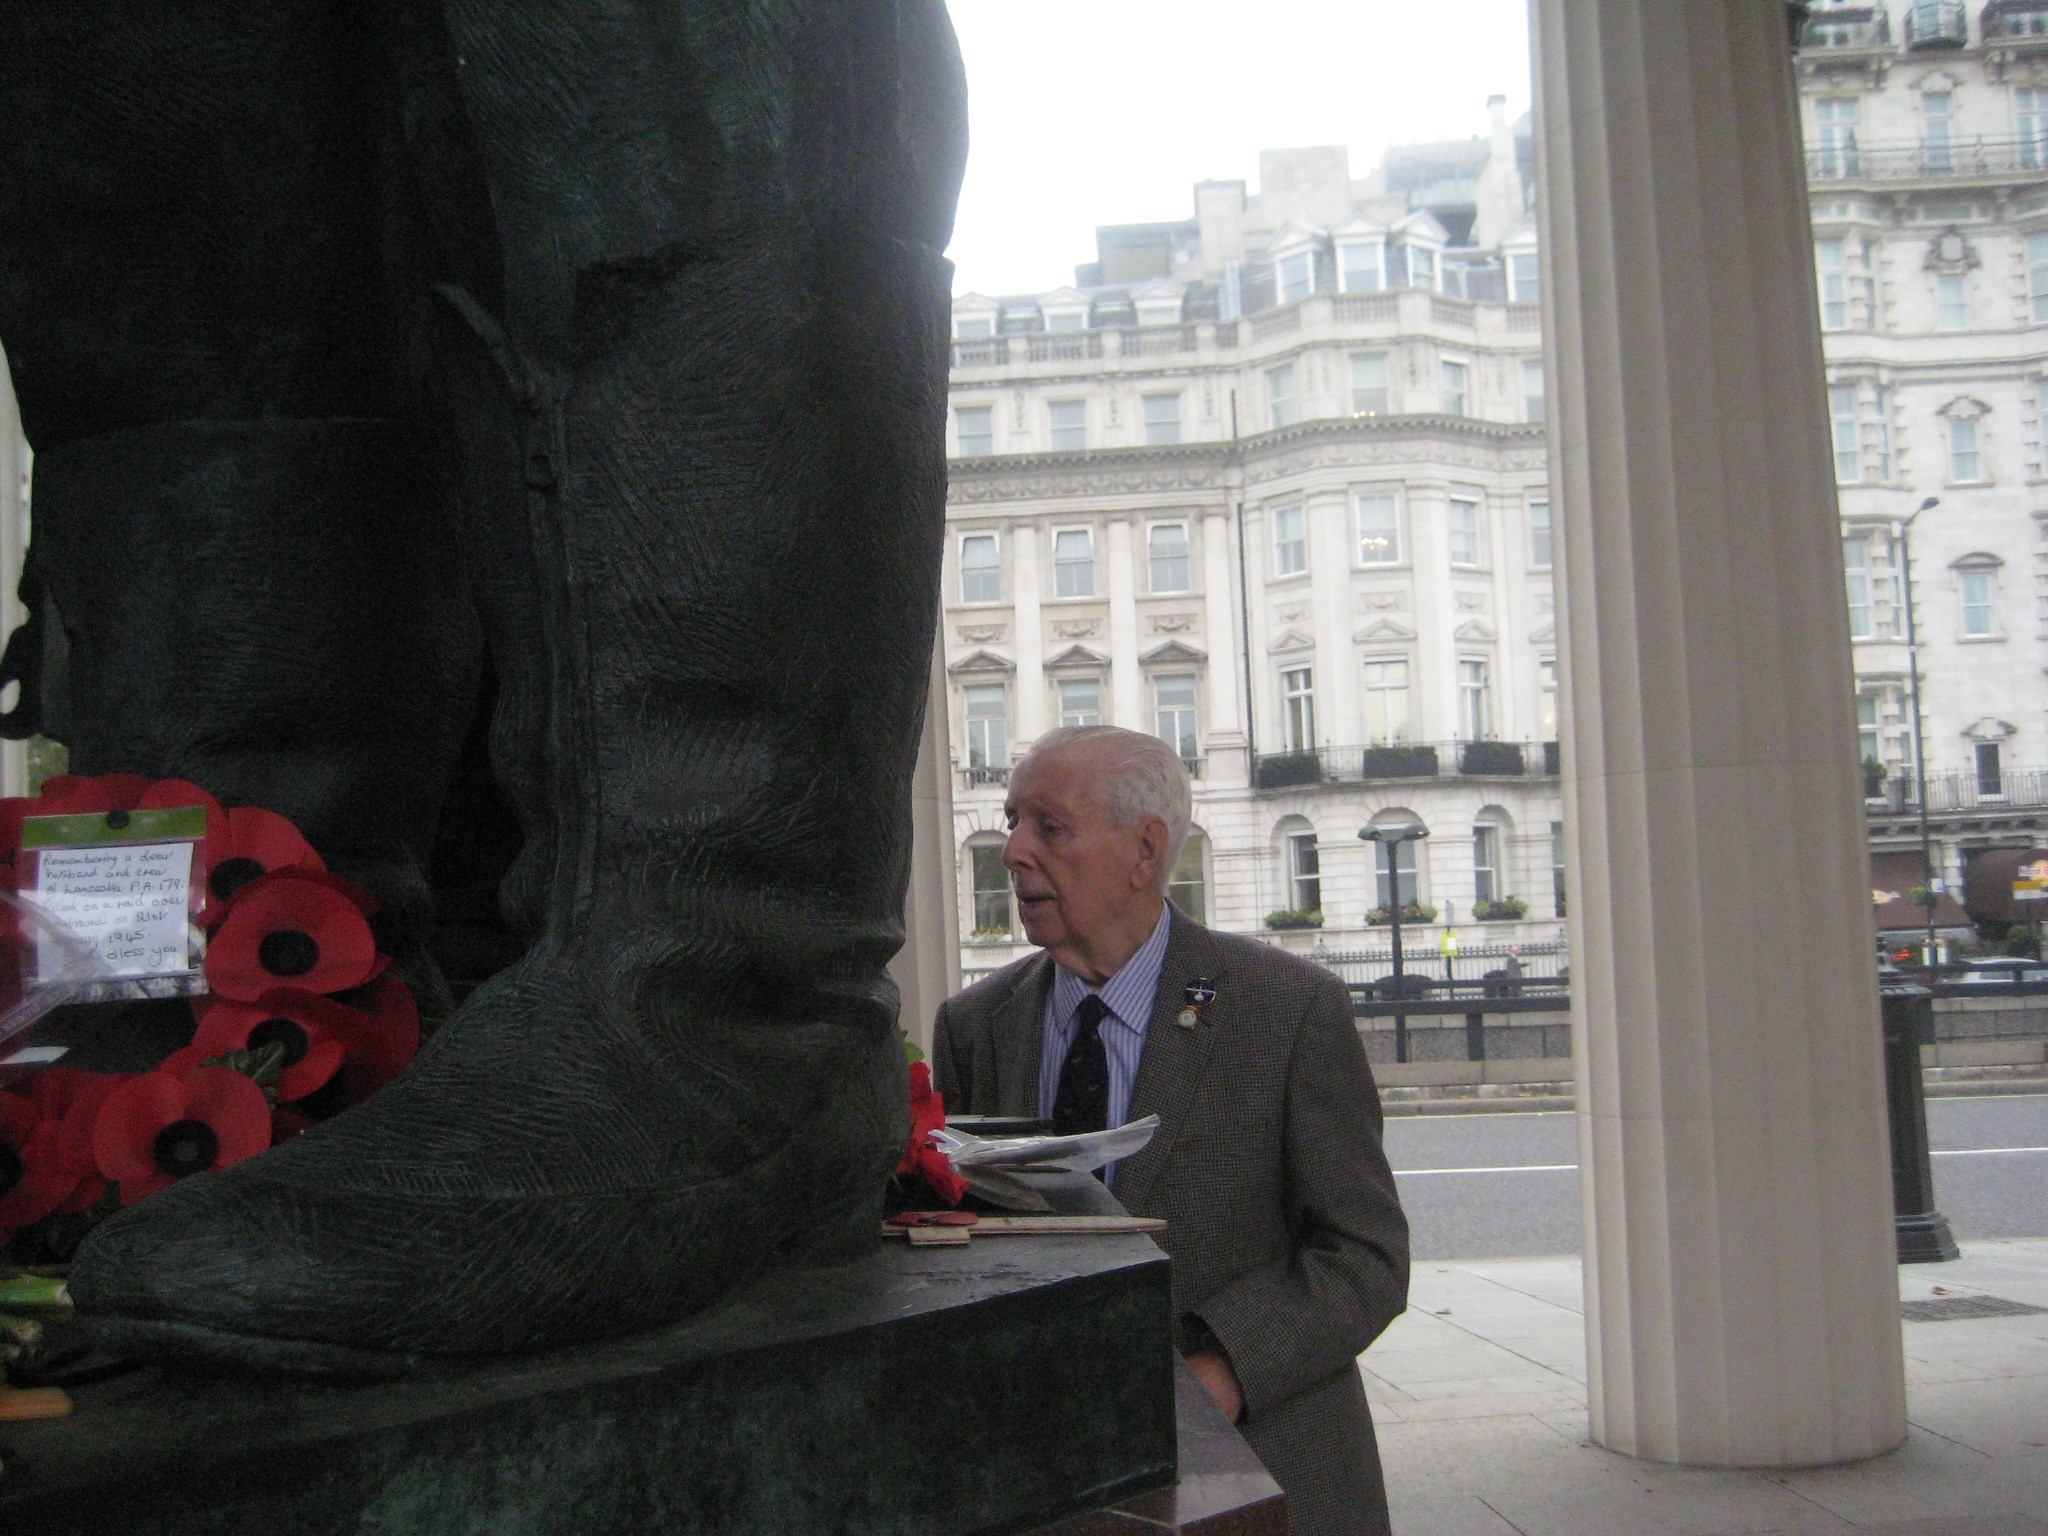 Dad at the Bomber Command Memorial in London